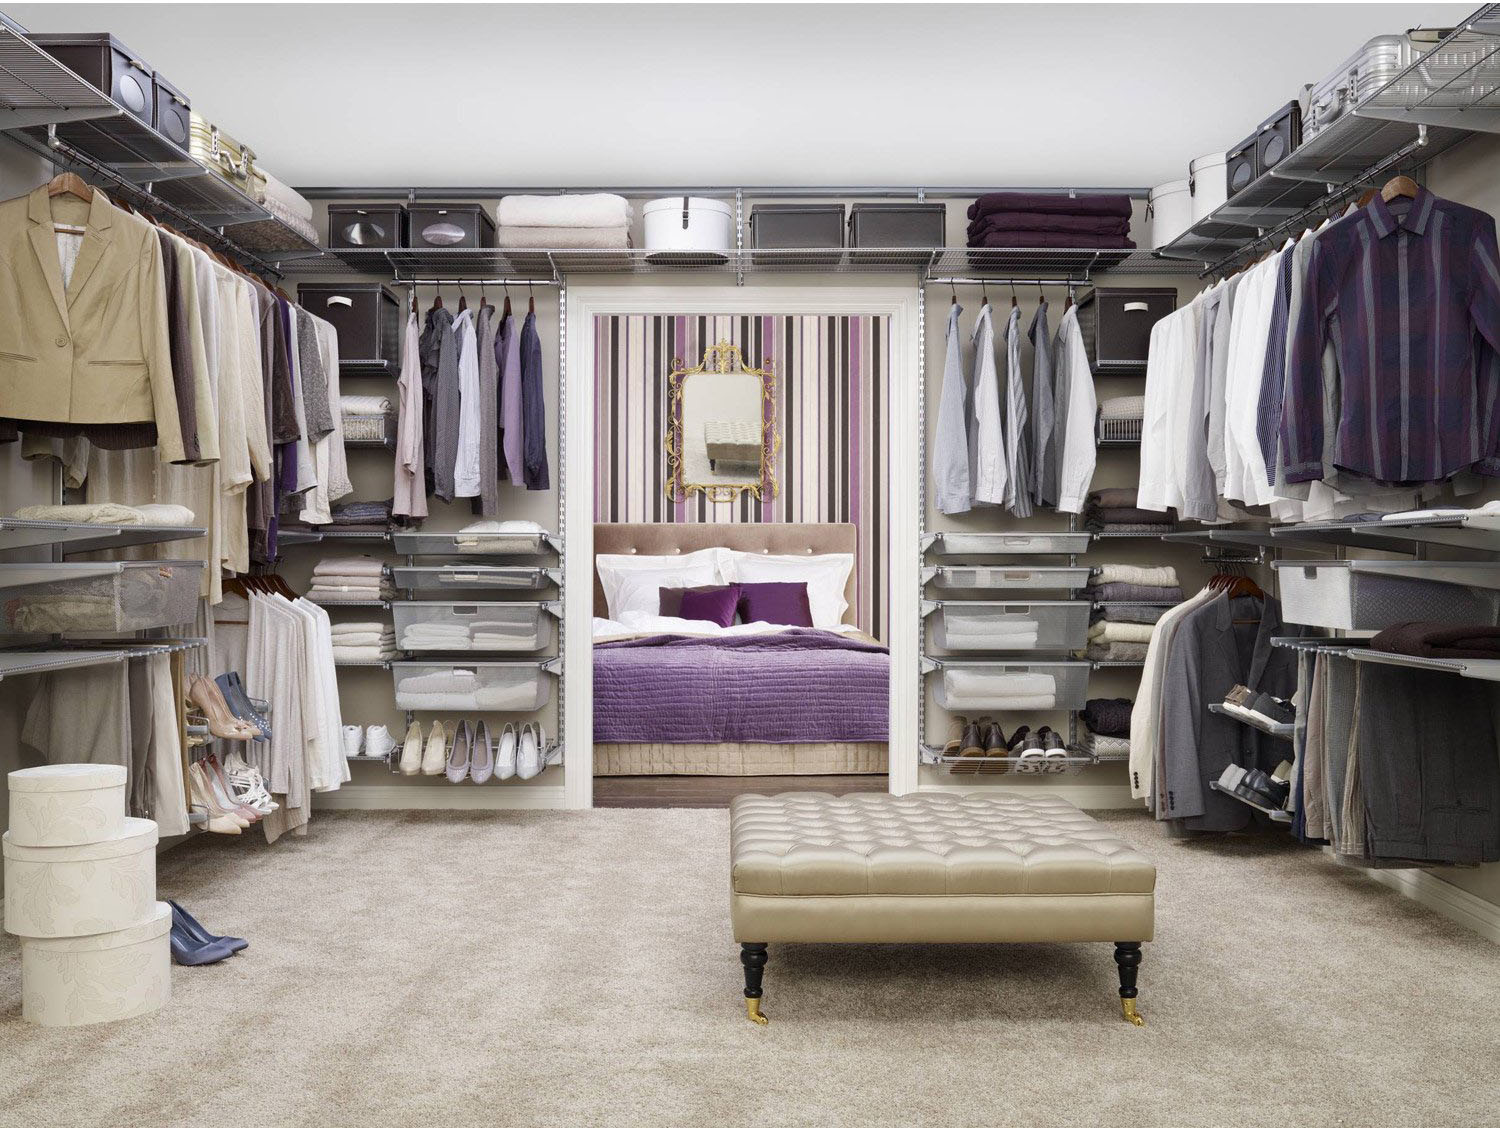 Dressing am nagement m tallique elfa leroy merlin - Amenagement dressing leroy merlin ...